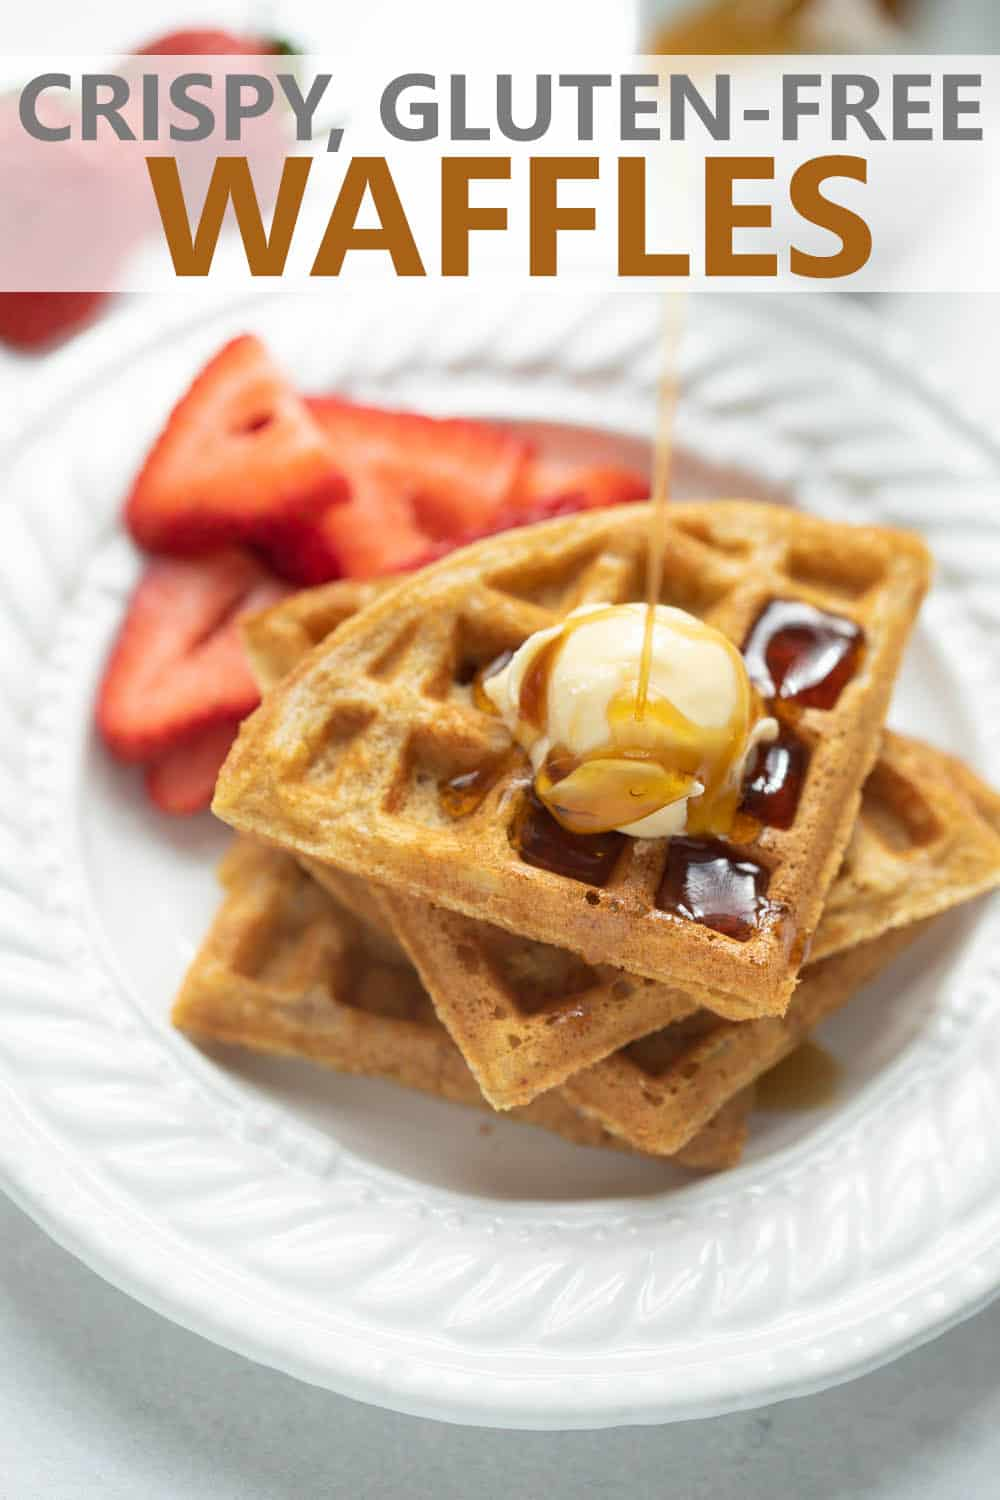 close up shot of waffles on white plate with maple syrup